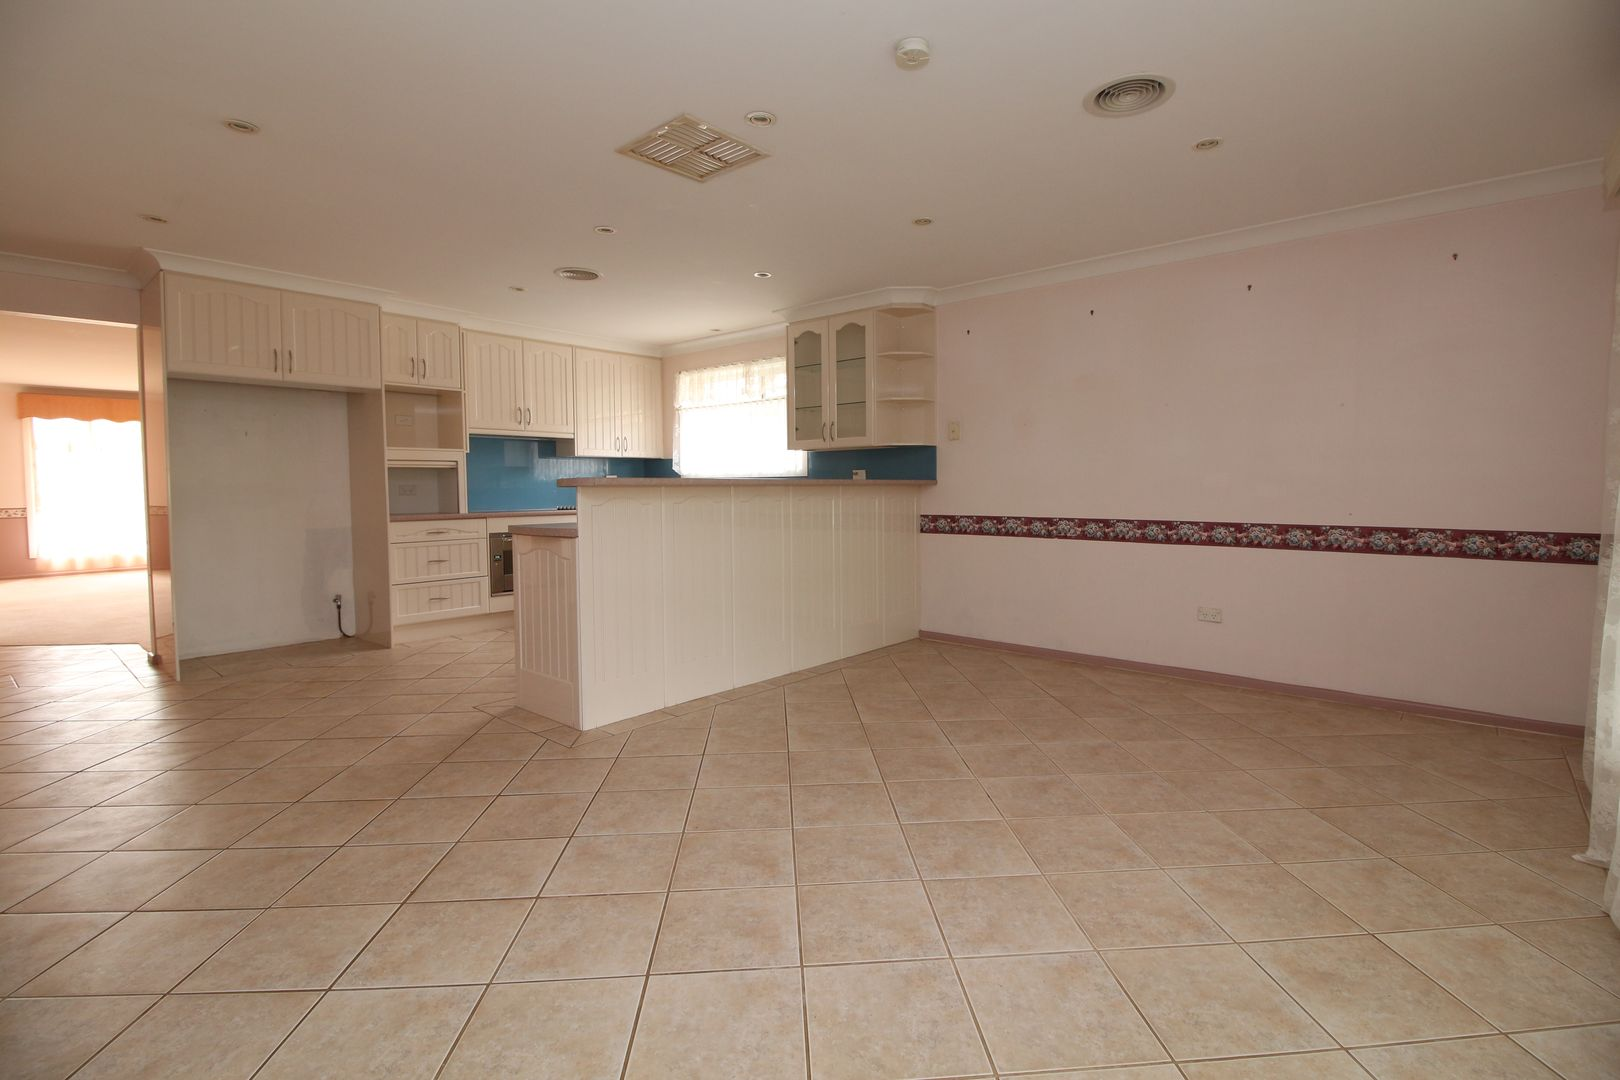 8 MESSNER STREET, Griffith NSW 2680, Image 2